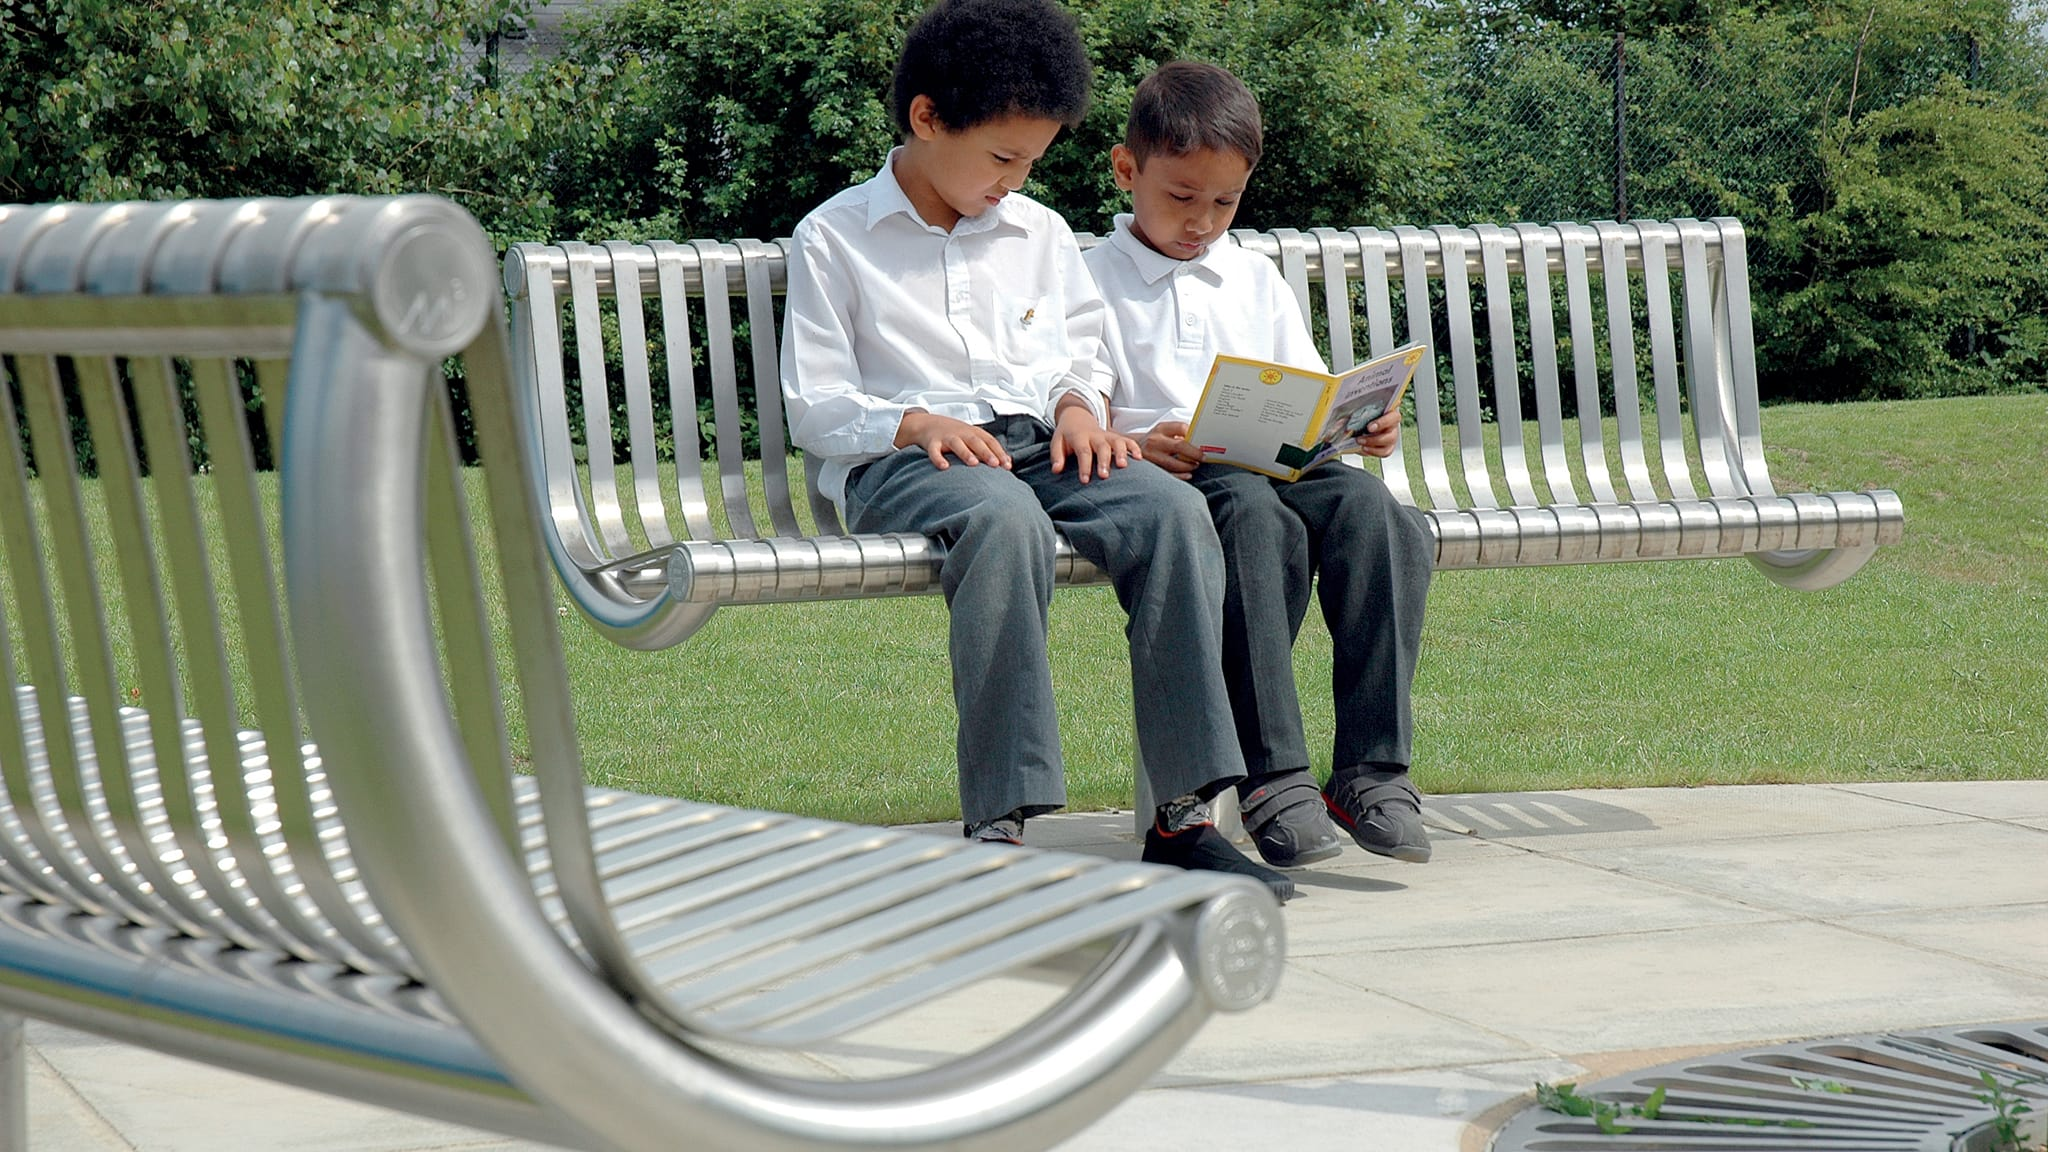 steel M3 bench with children sat reading a book